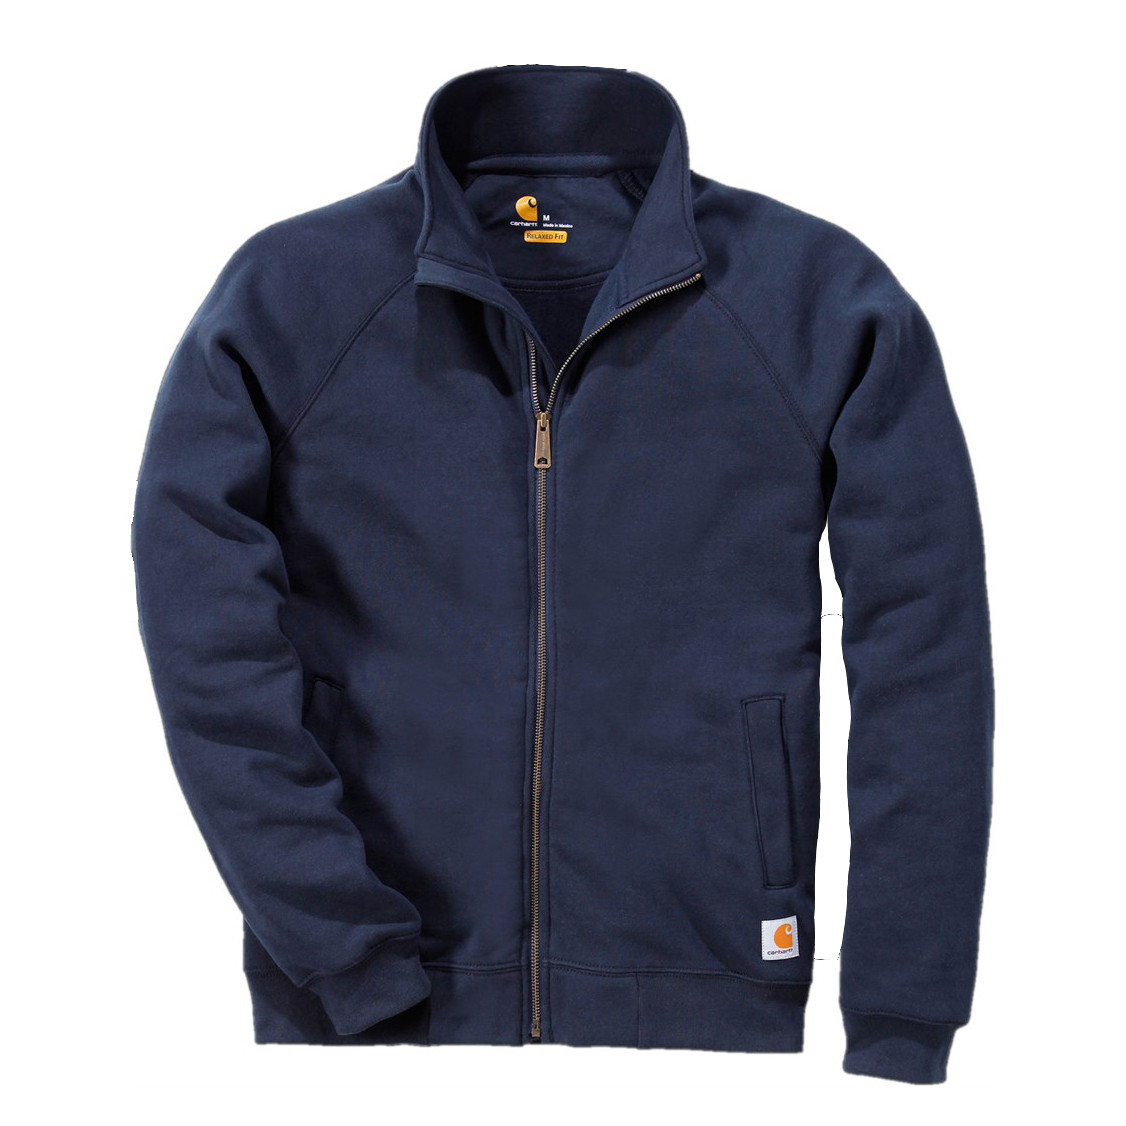 Свитшот на молнии Carhartt Midweight Mock Neck Zip Sweatshirt - K350 (New Navy, L)